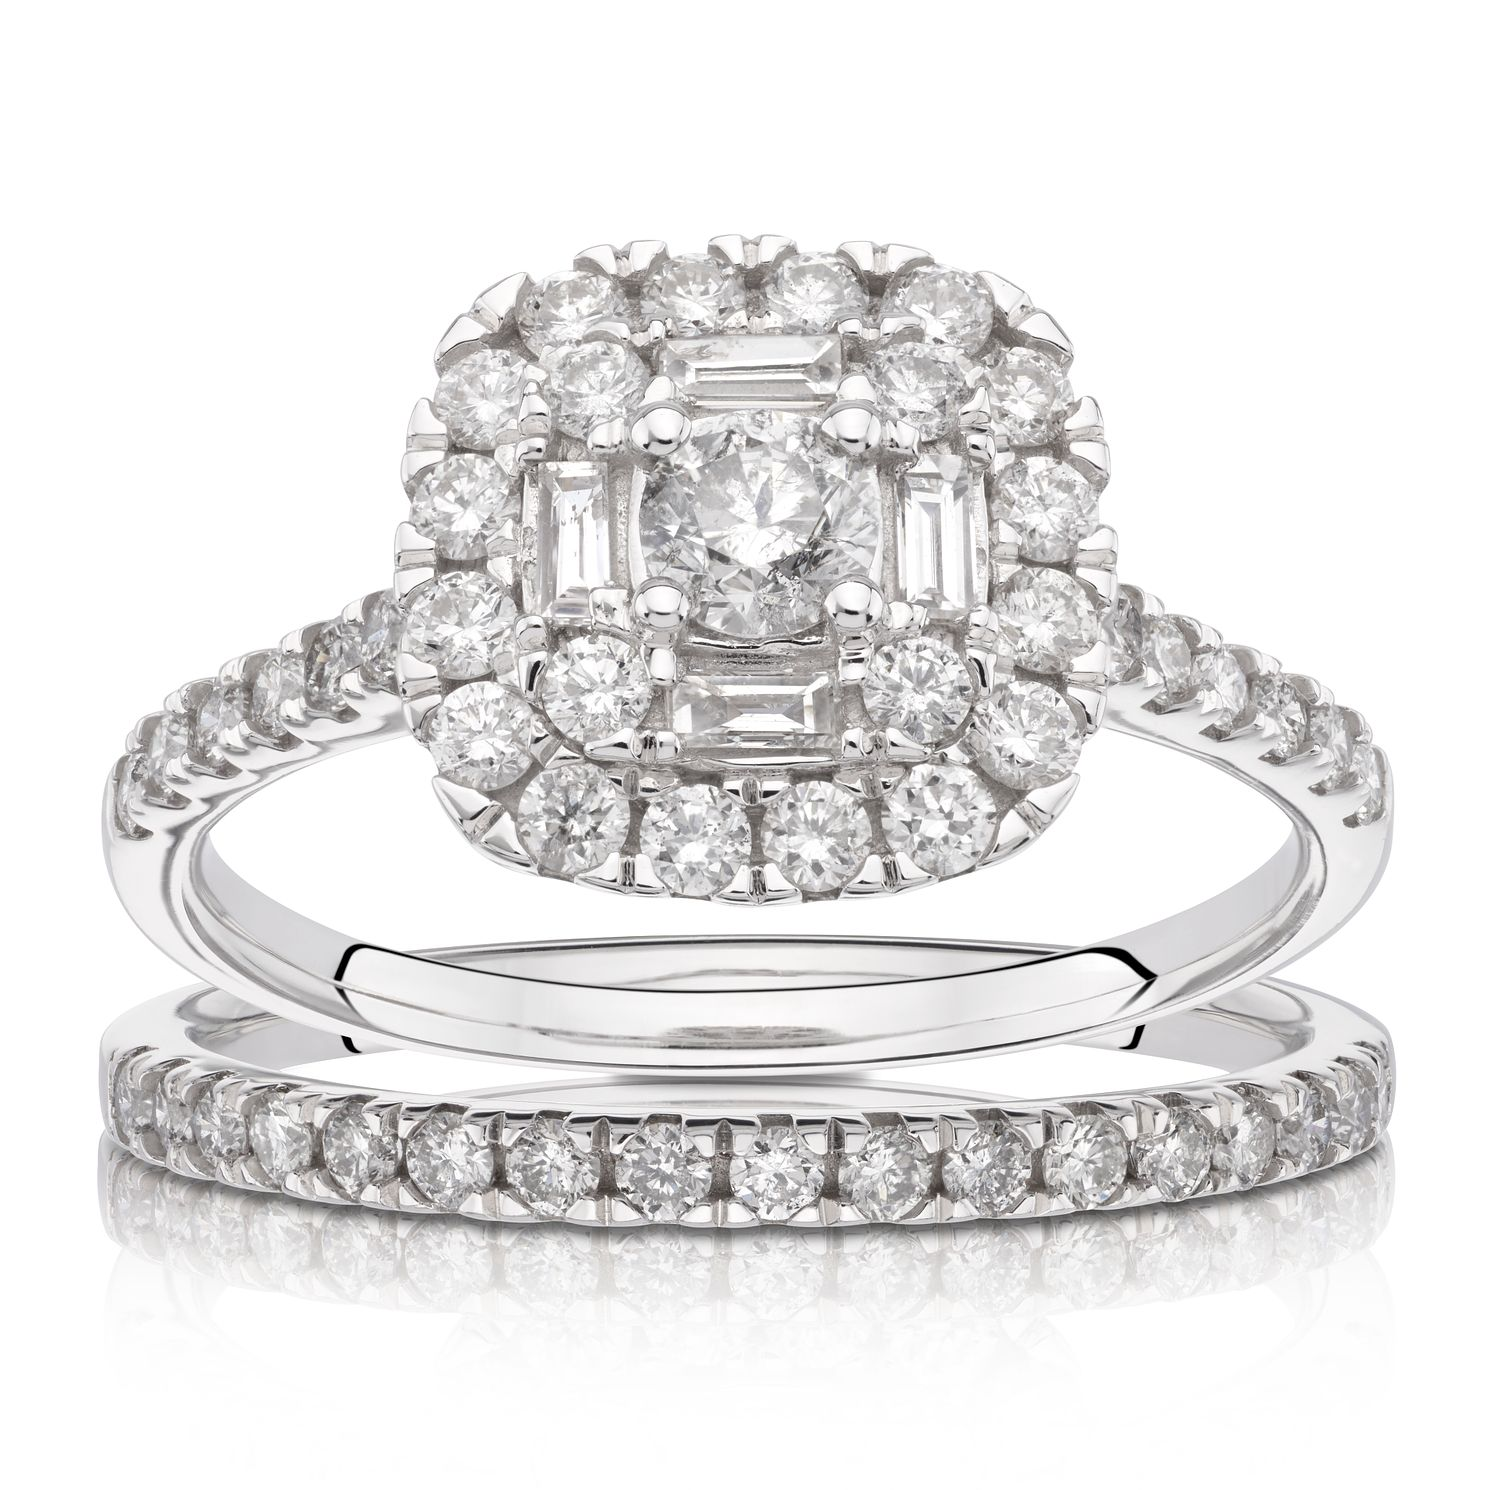 18ct White Gold 1ct Total Diamond Cushion Halo Bridal Set - Product number 1221752